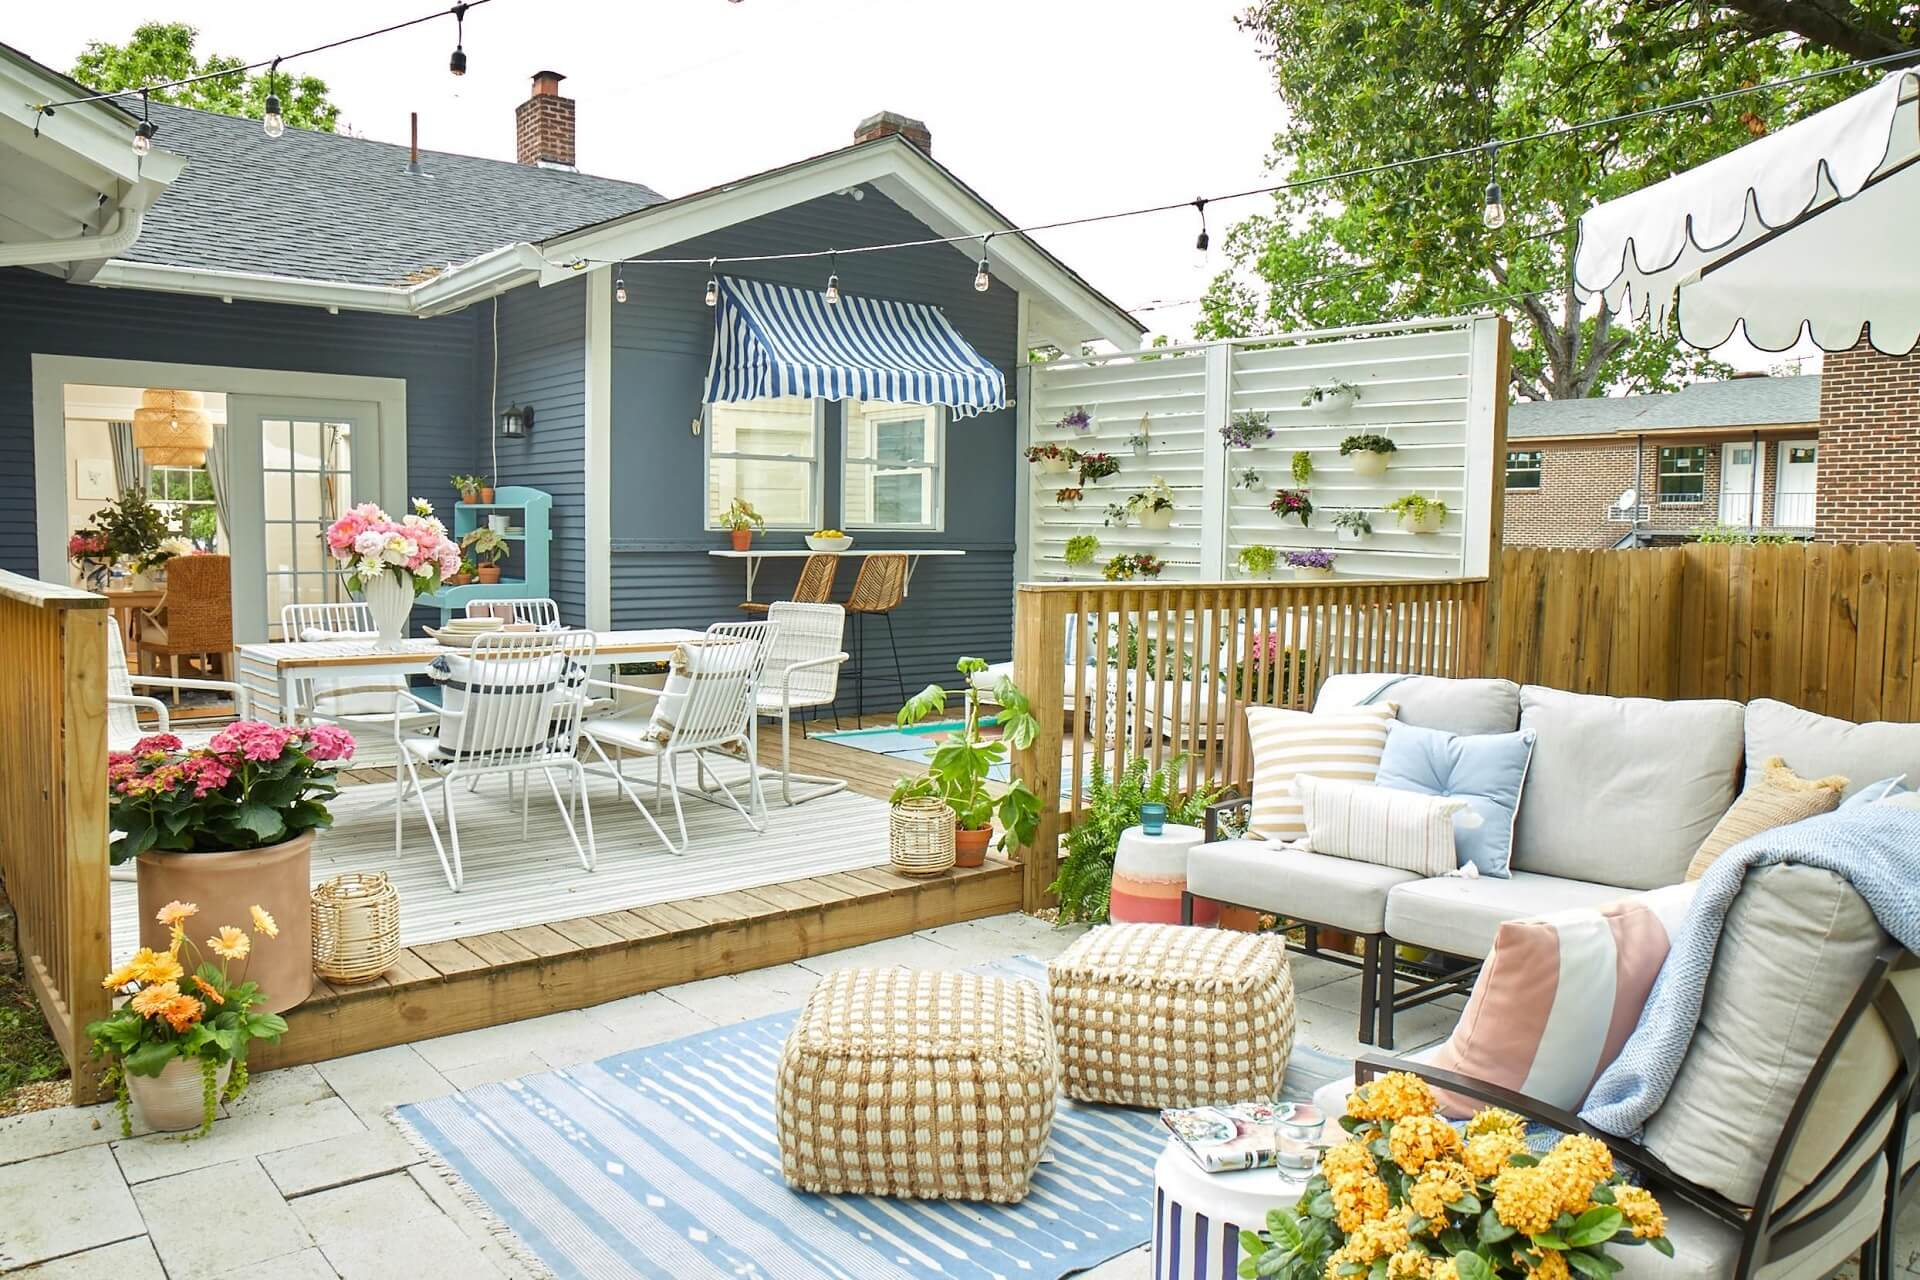 How Do I Choose an Outdoor Living Builder for My Home?